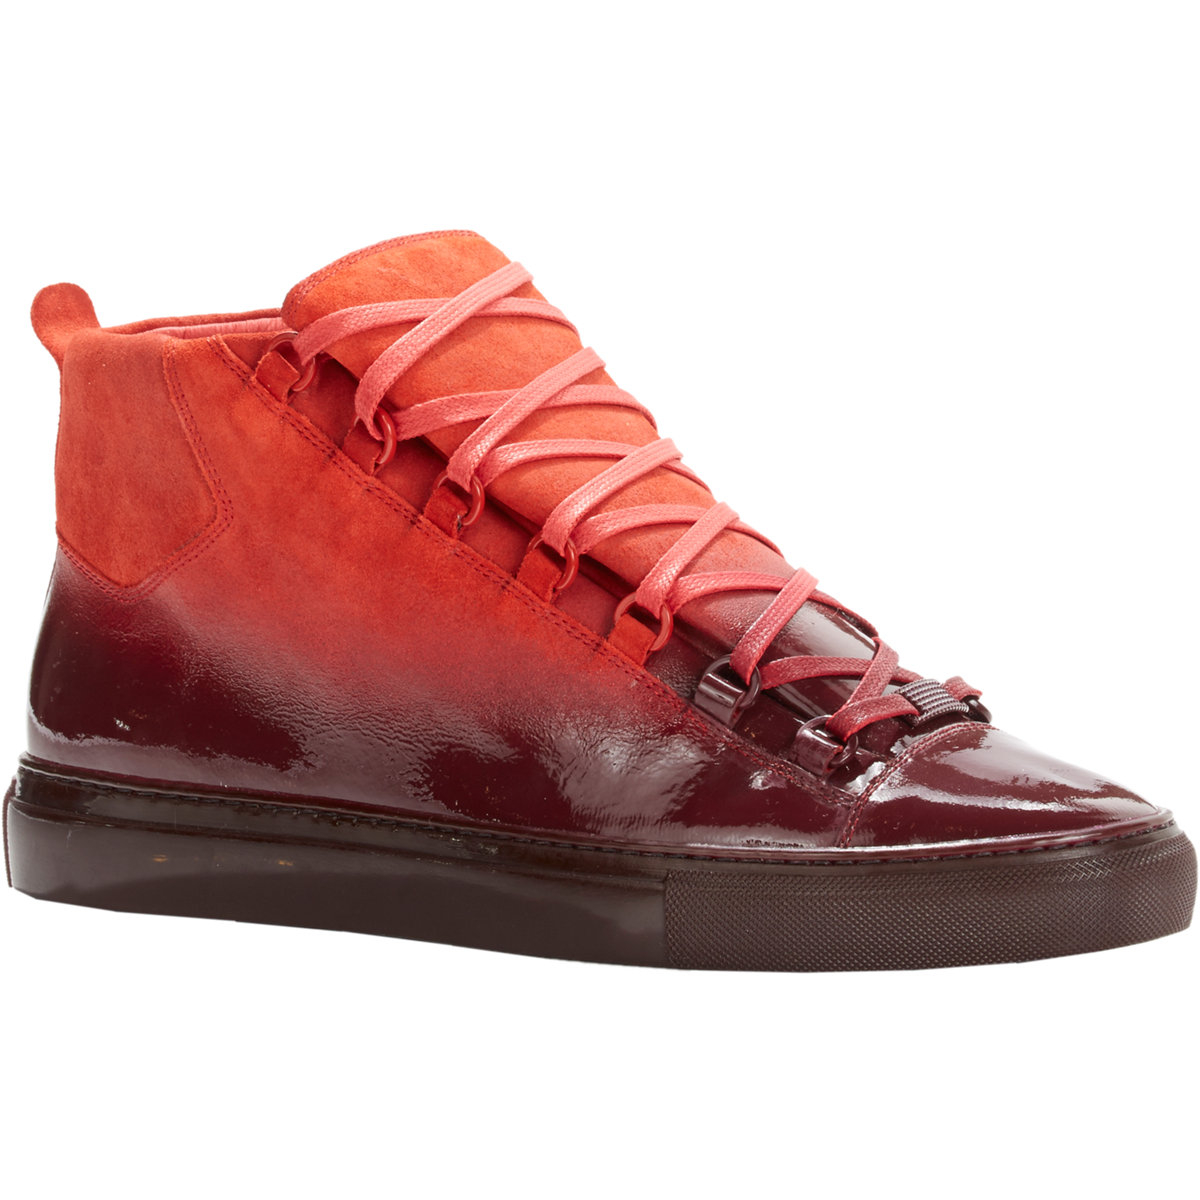 Rubber Rings For Men >> Lyst - Balenciaga Ombré Arena High-Top Sneakers in Red for Men